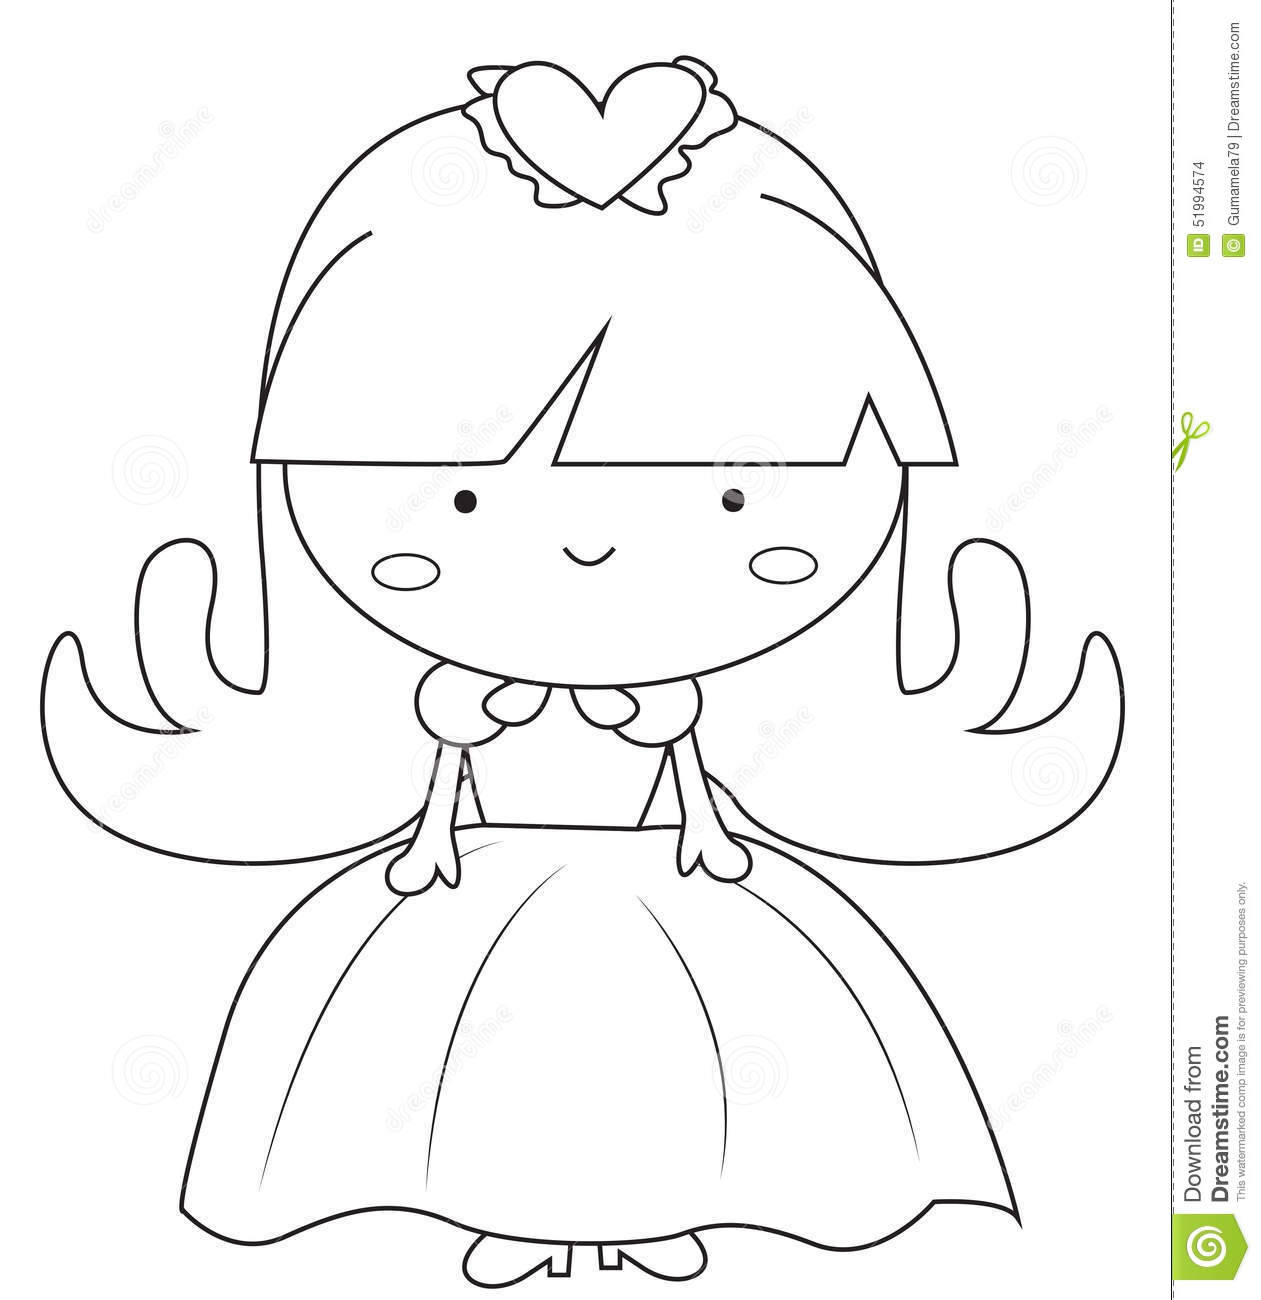 in a dress coloring page stock illustration image 51089083